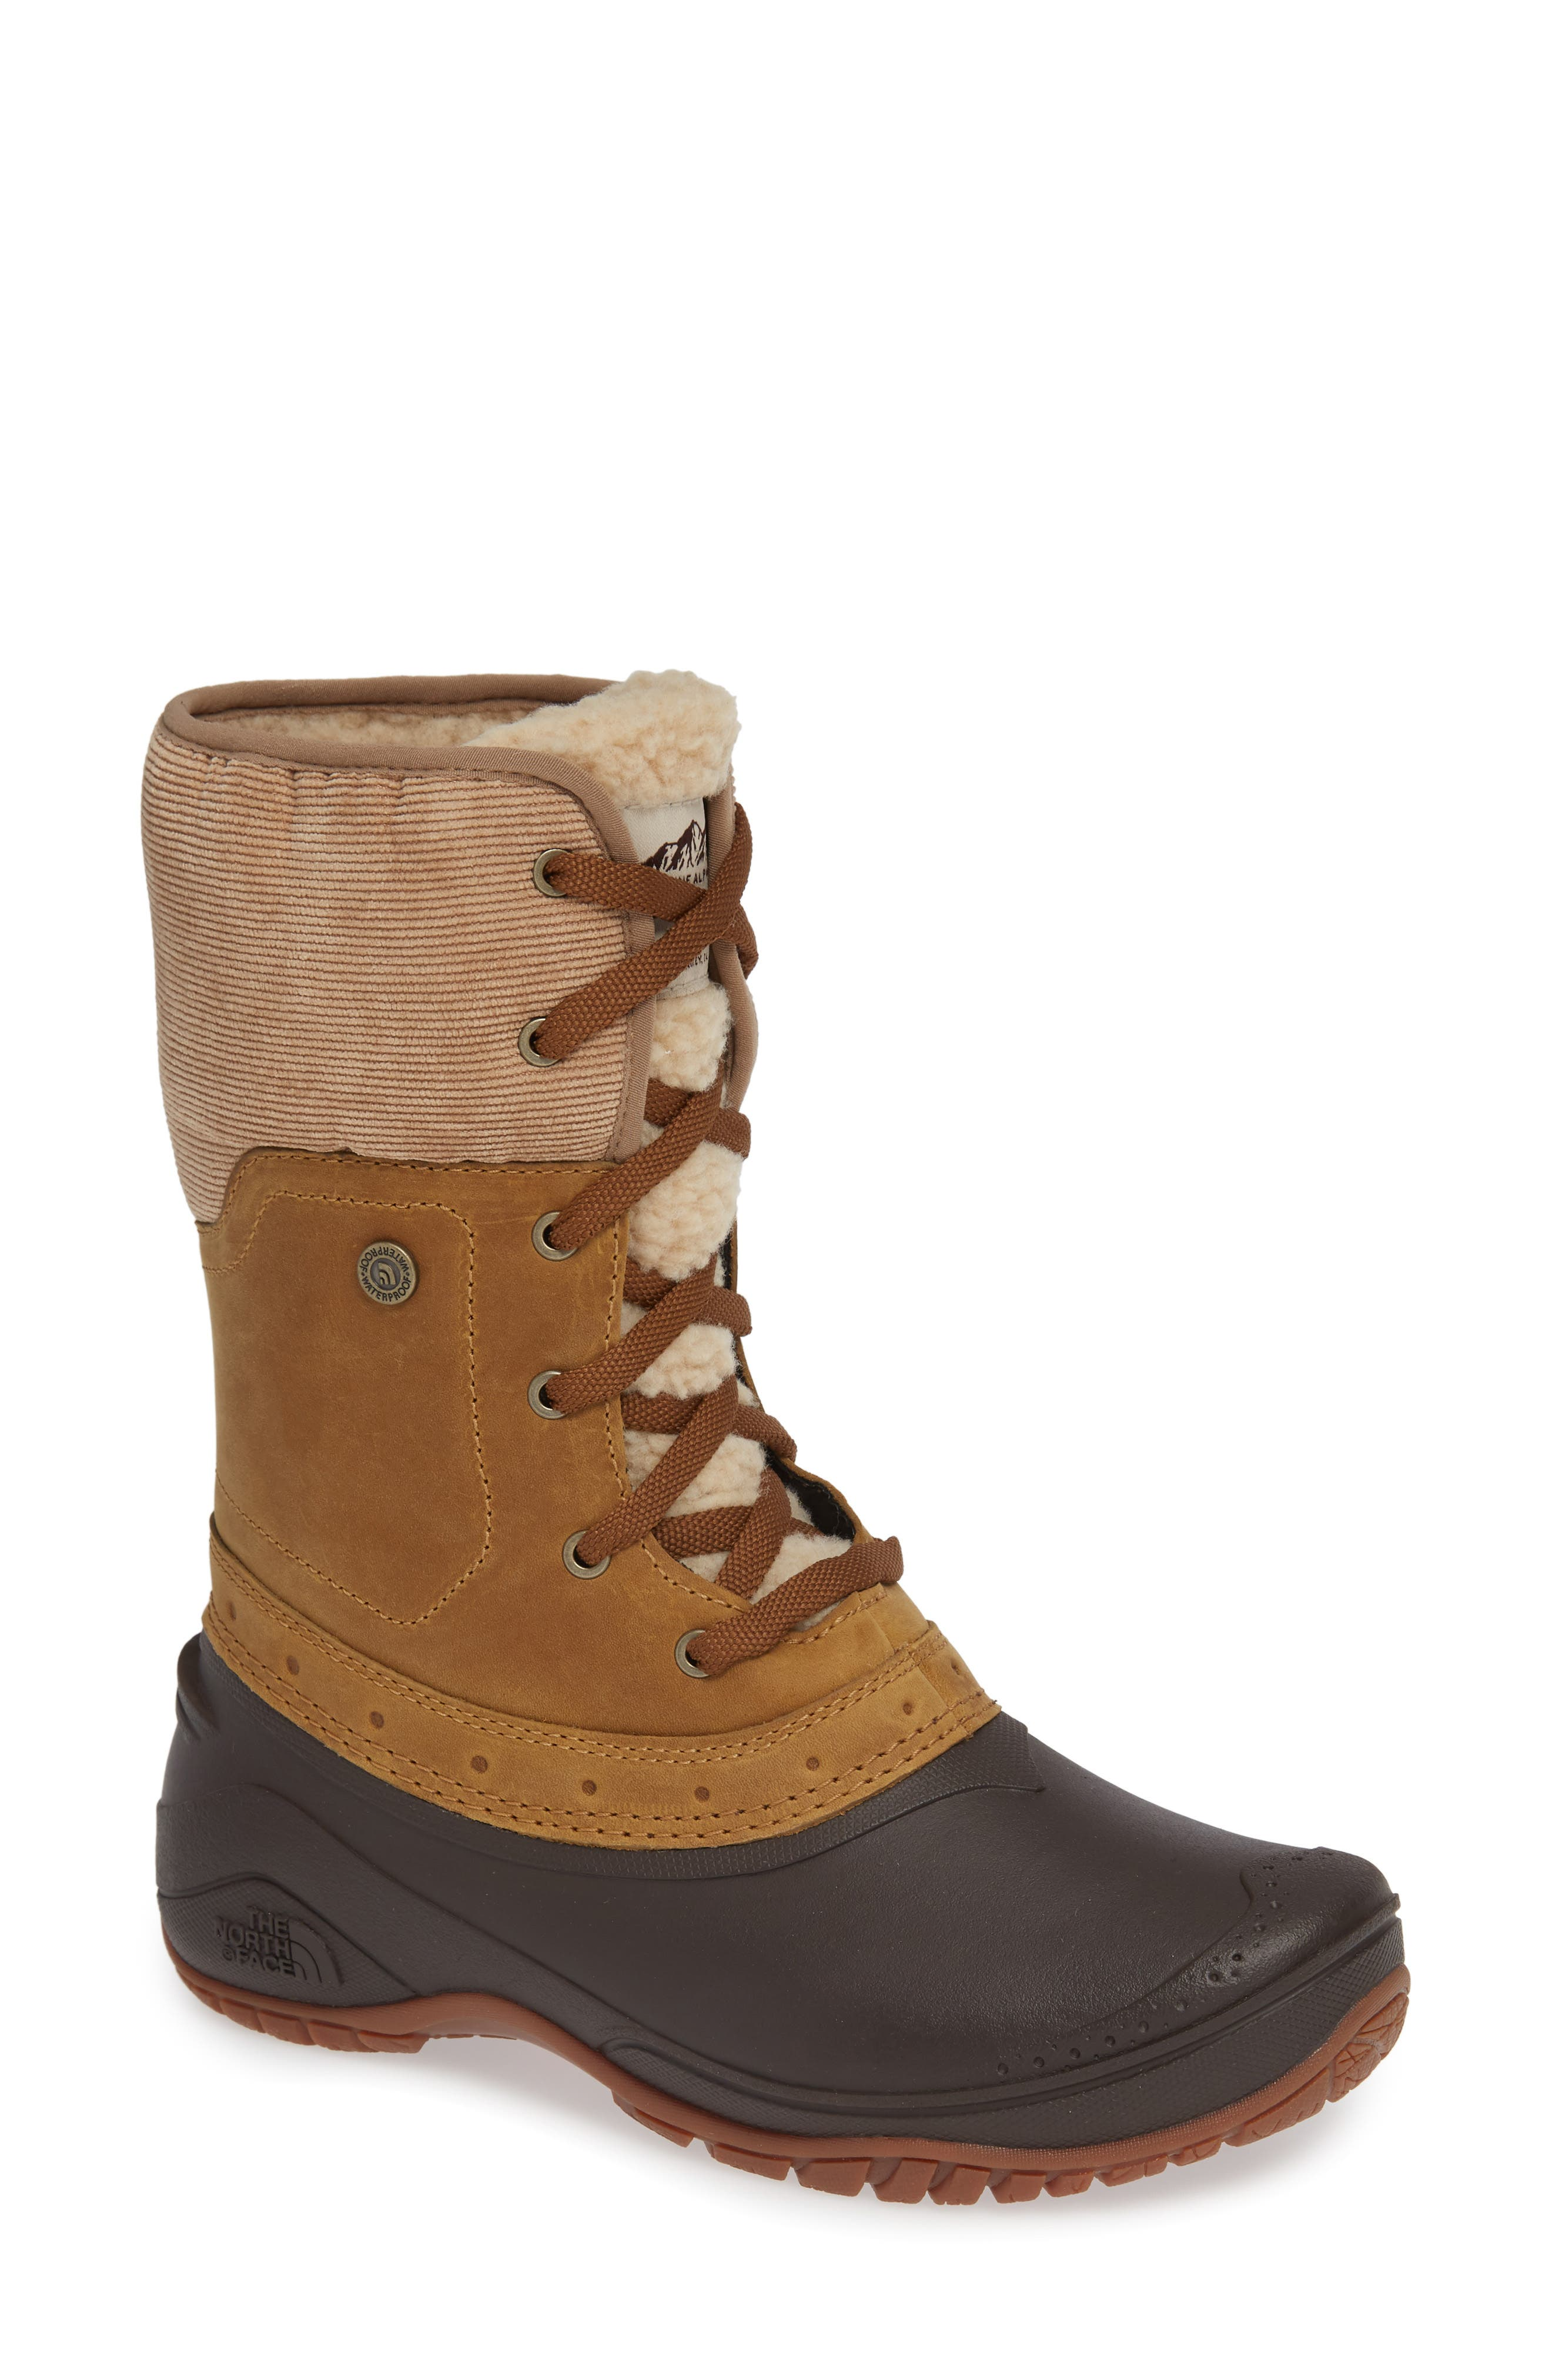 Shellista Roll Cuff Waterproof Insulated Winter Boot,                         Main,                         color, GOLDEN BROWN/ COFFEE BROWN